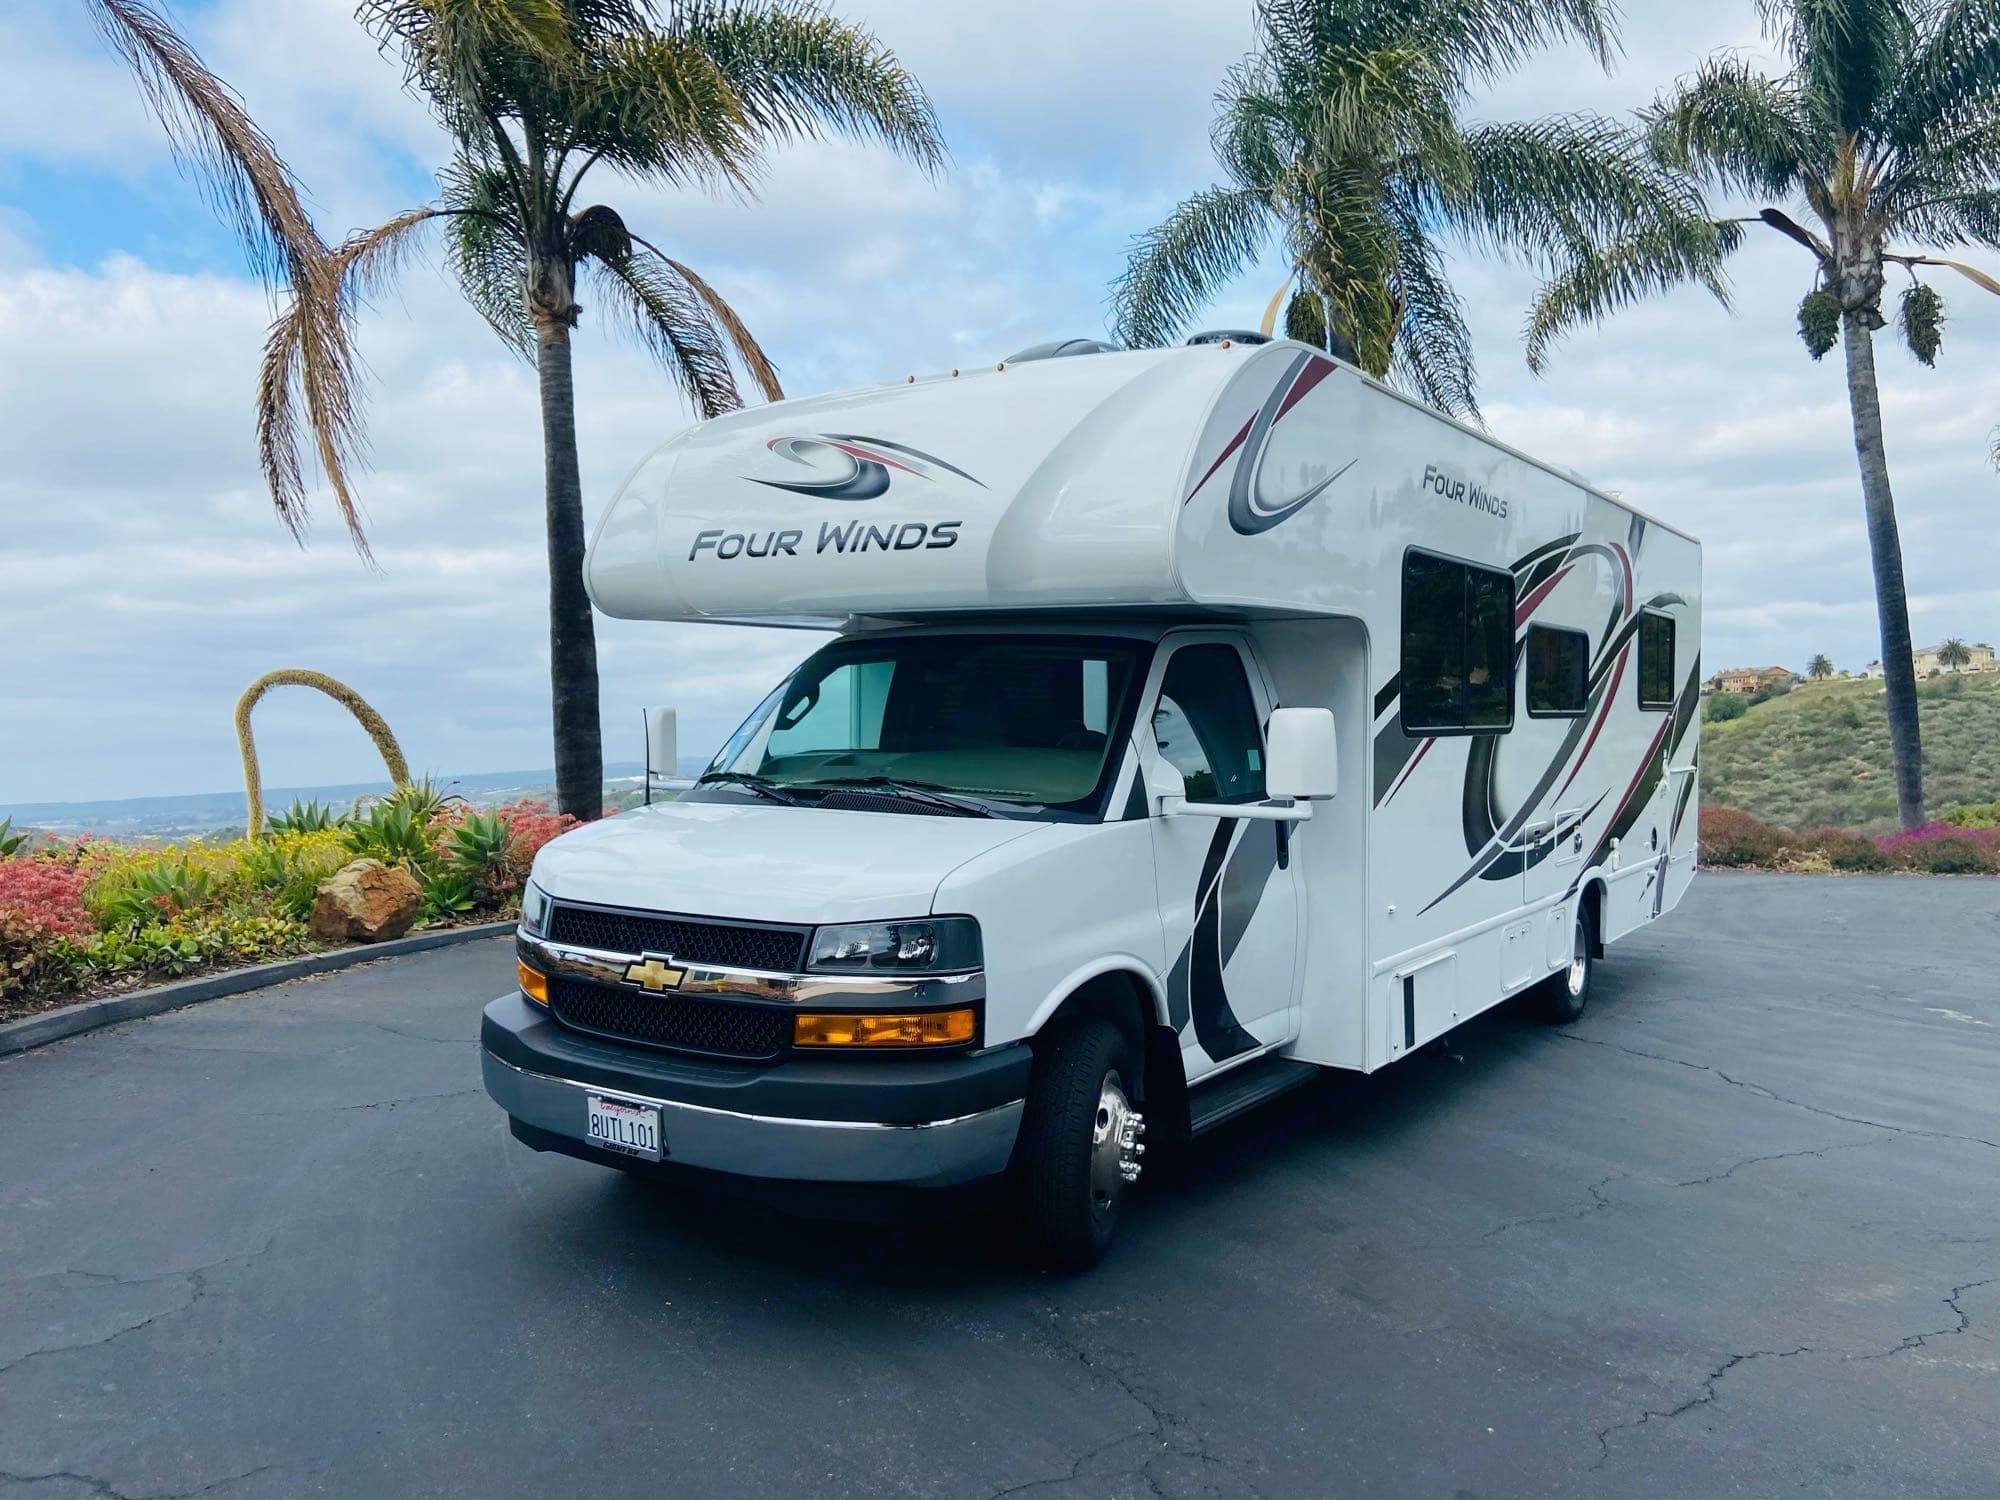 Meet Ocean Breeze the home of your next exciting getaway. Thor Motor Coach Four Winds 2021